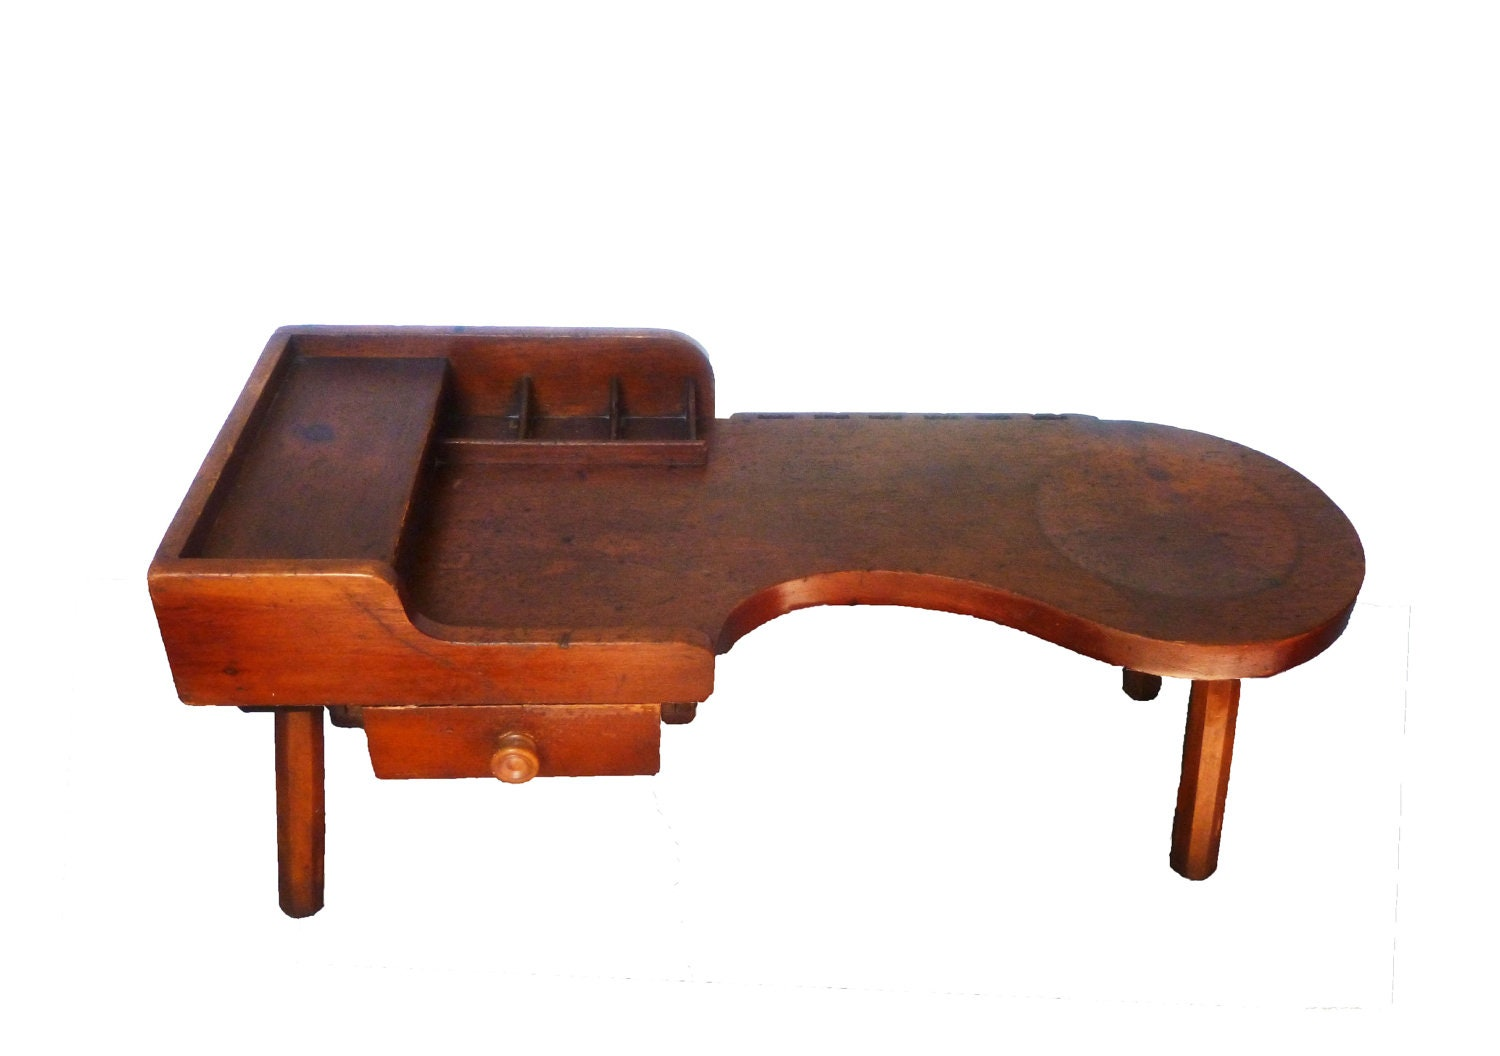 Vintage Cobbler S Bench To Use As Coffee Table Free